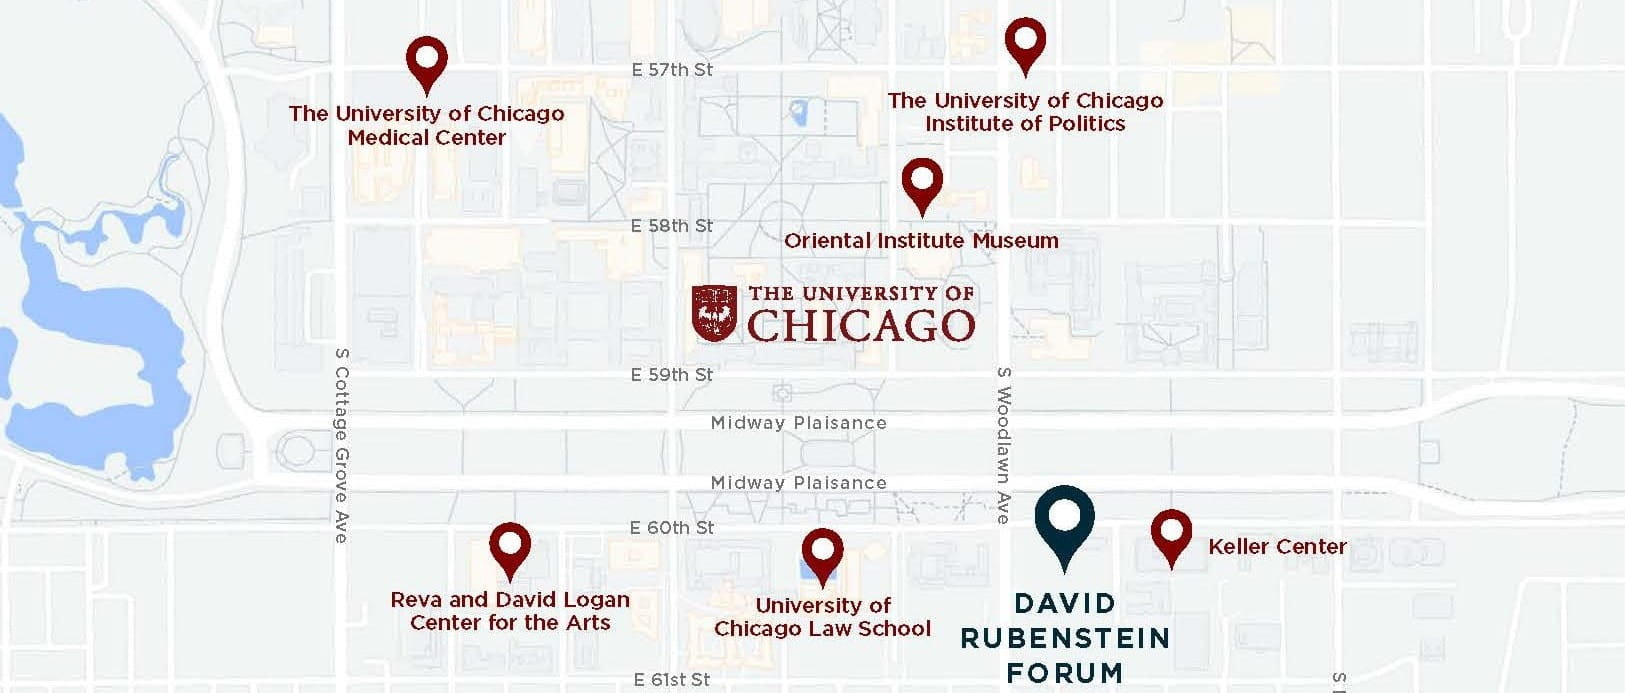 Displaying a partial map of the University of Chicago campus, and the current location of David Rubenstein Forum.